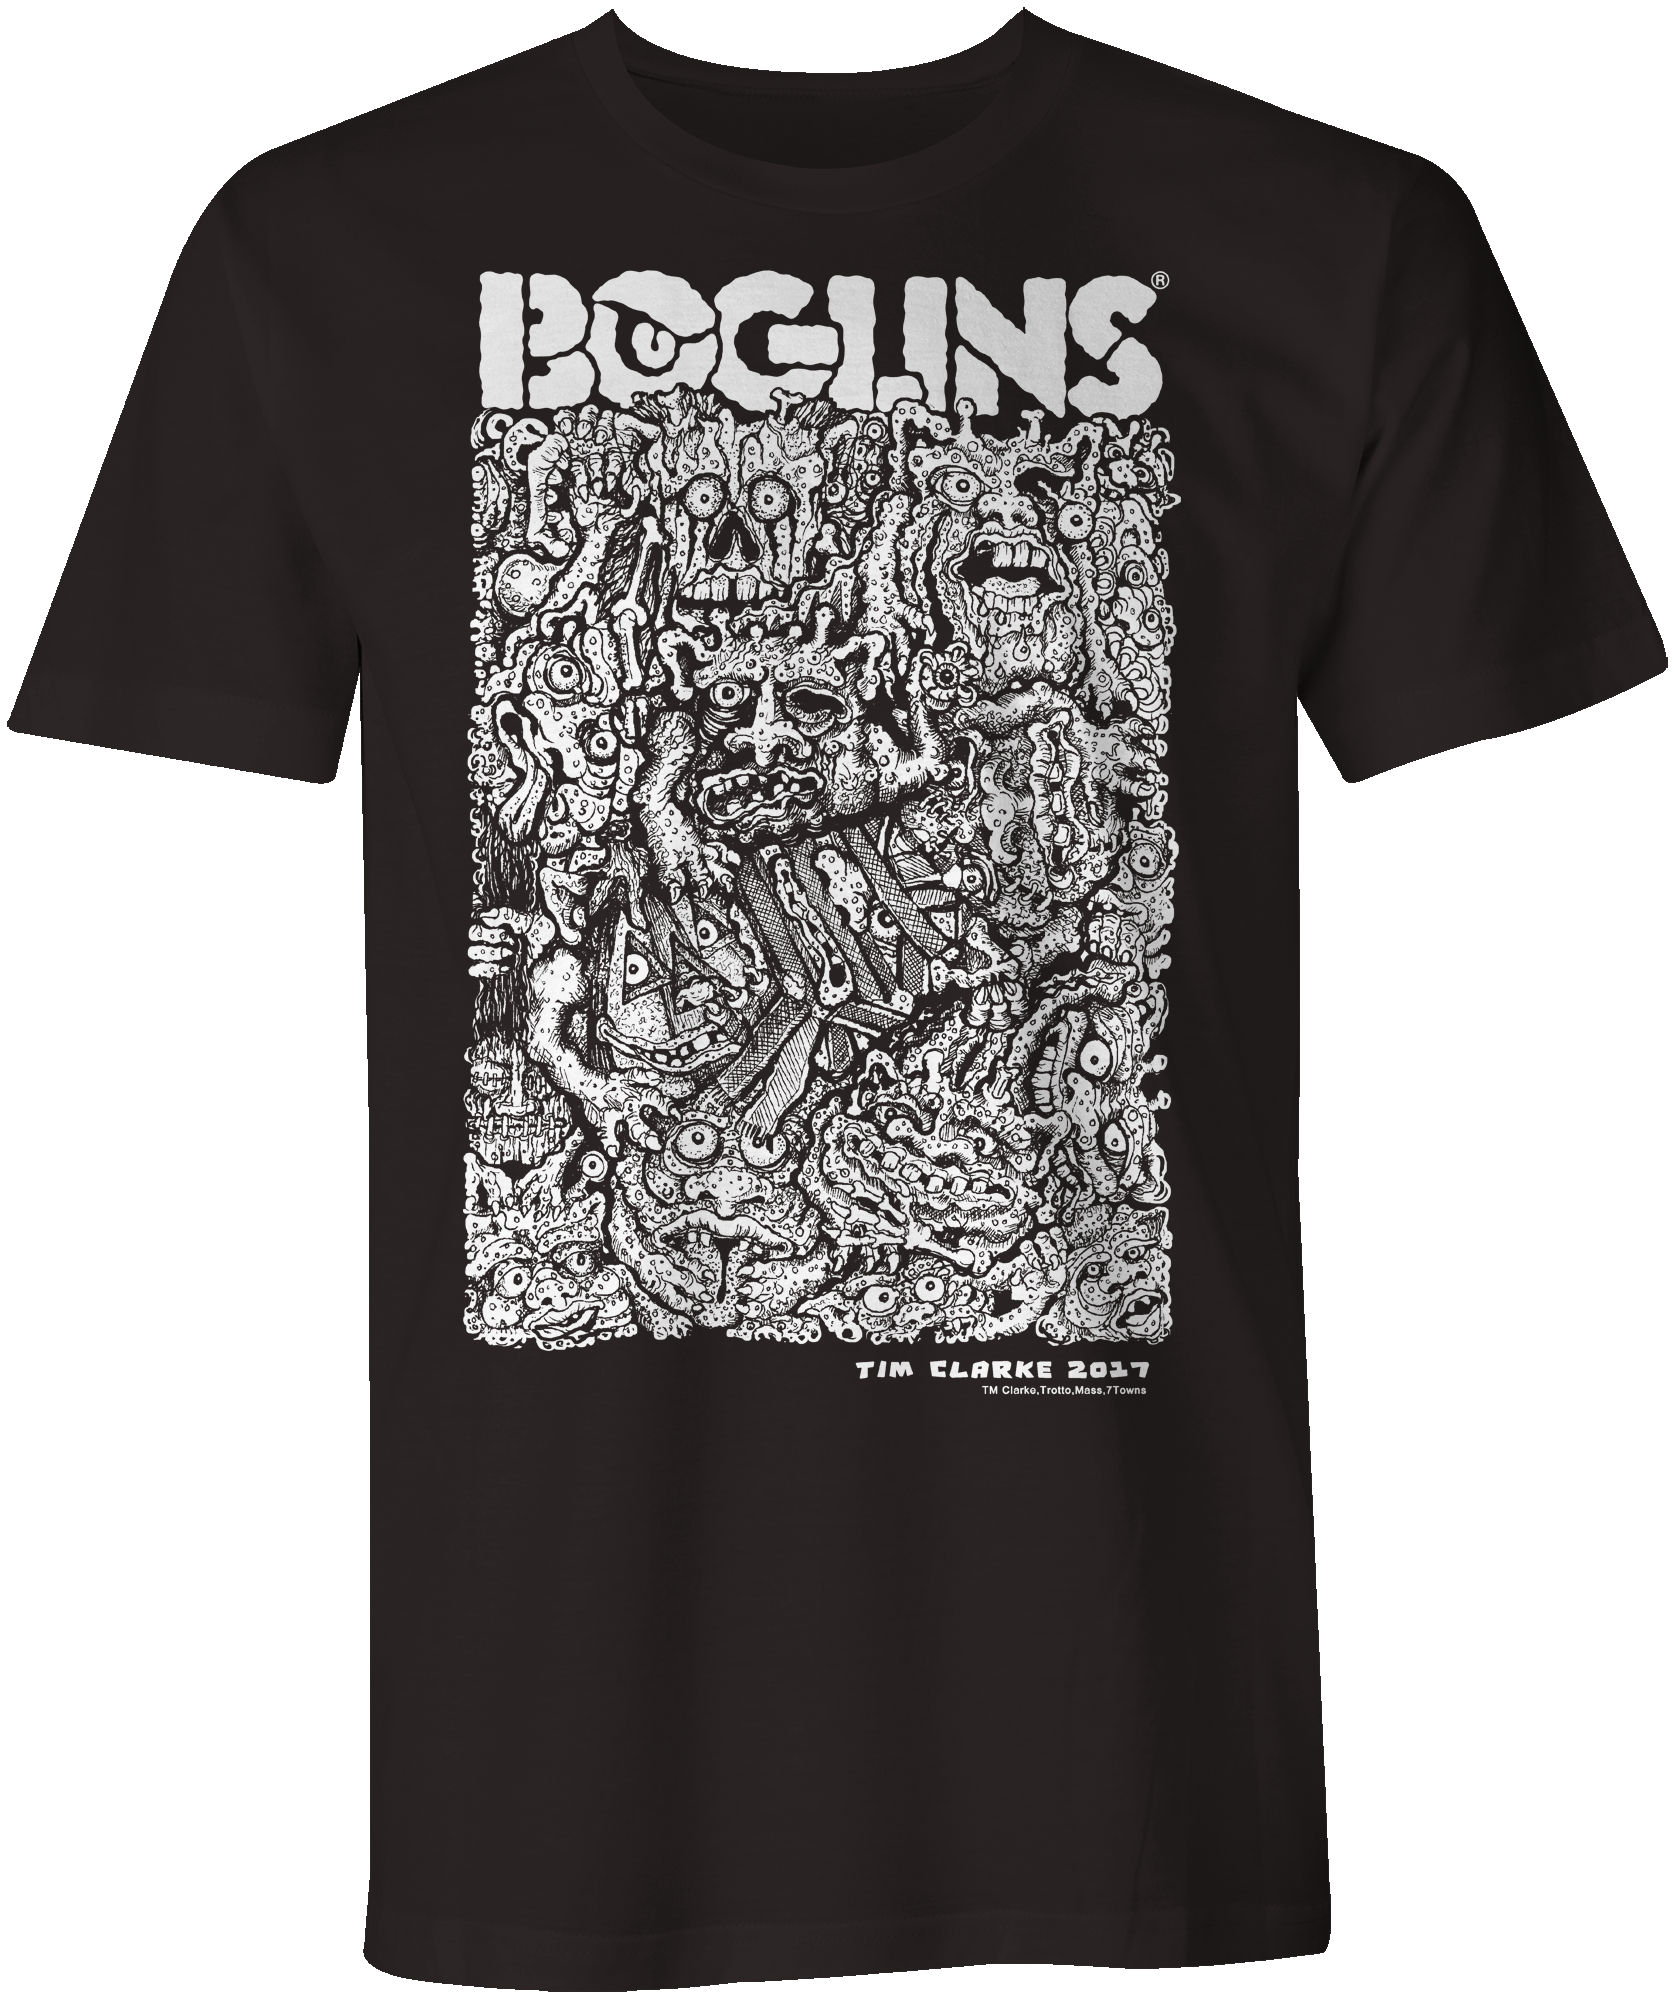 NEW! Boglins Menace T-Shirt!    $20.00